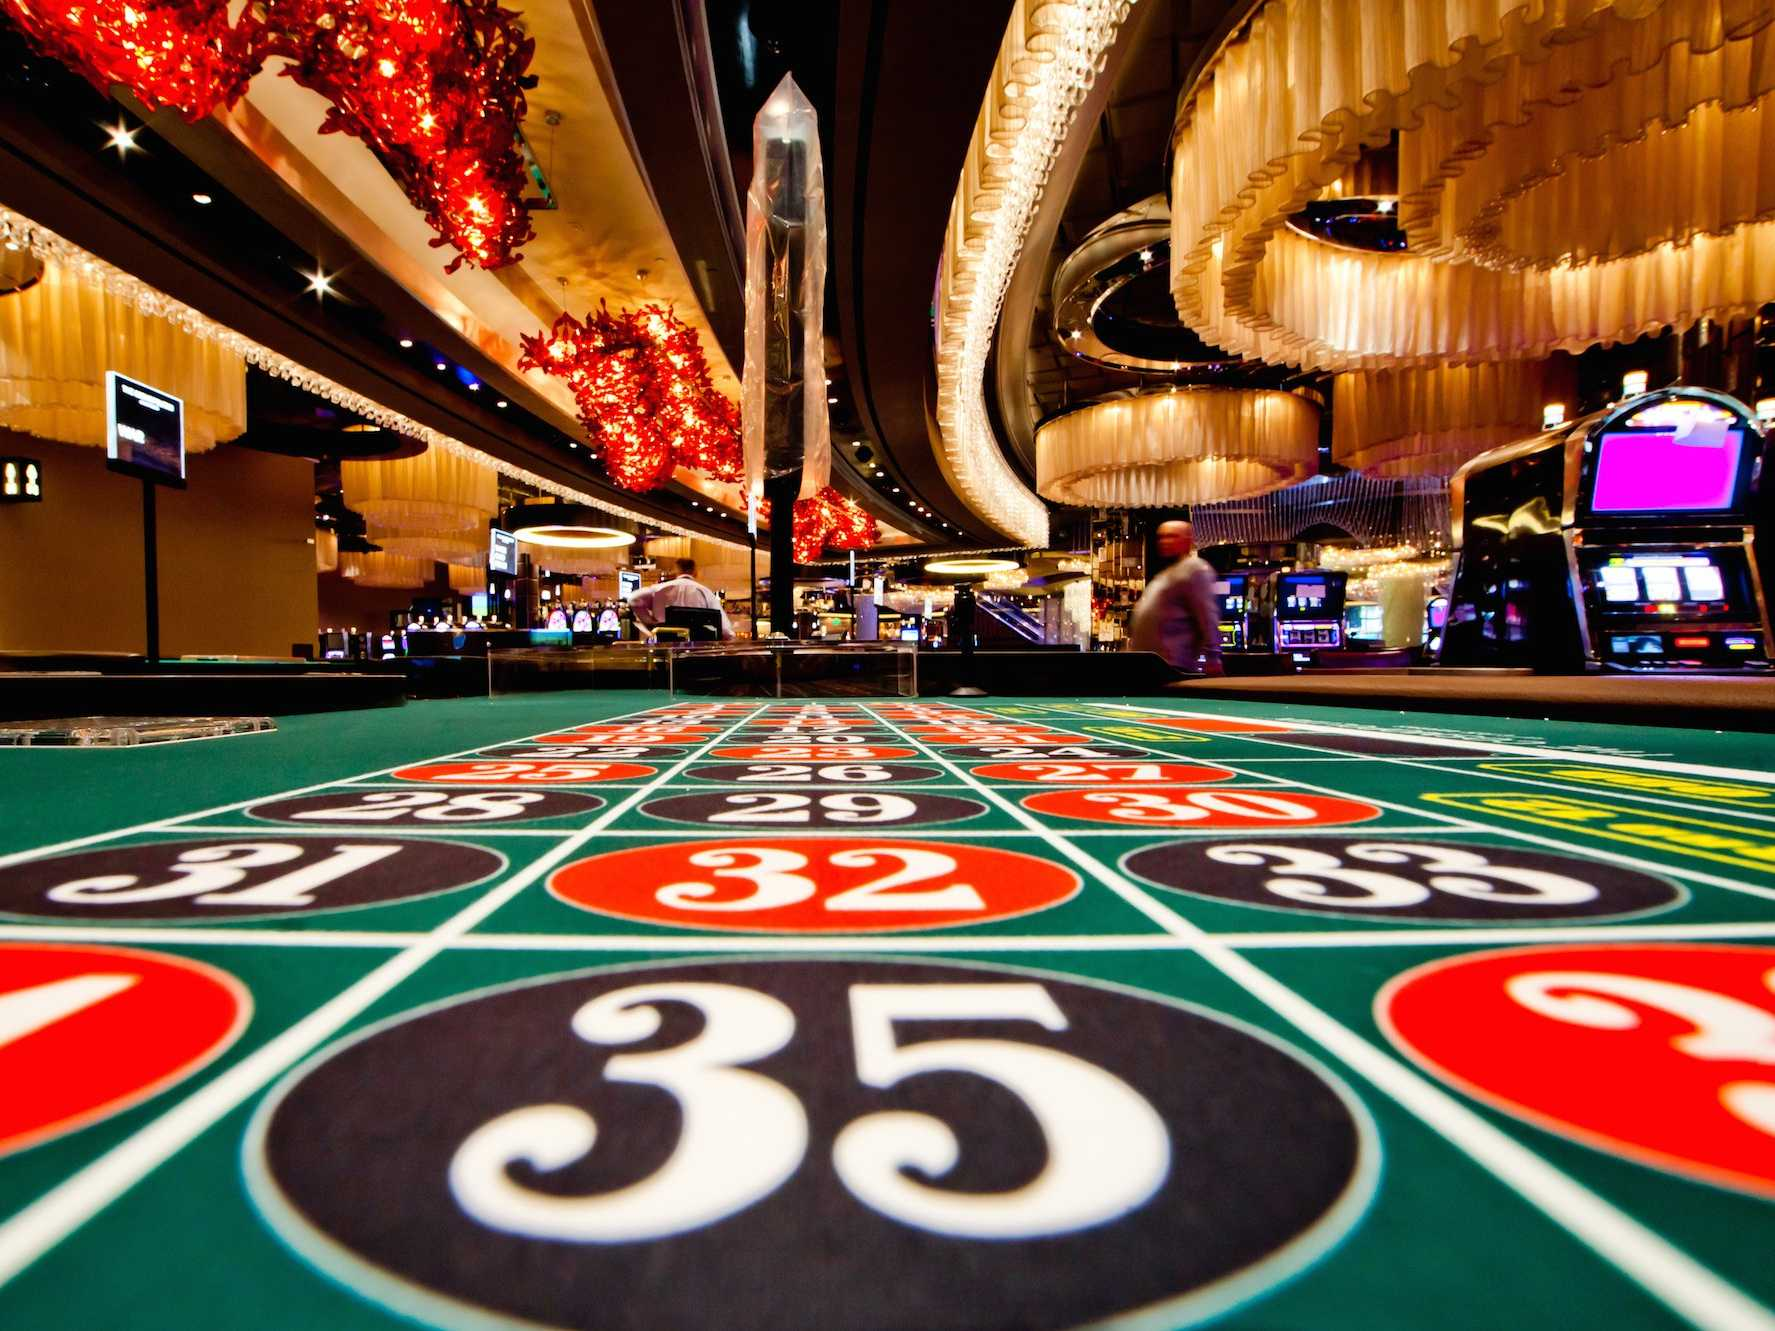 How much do casinos make?